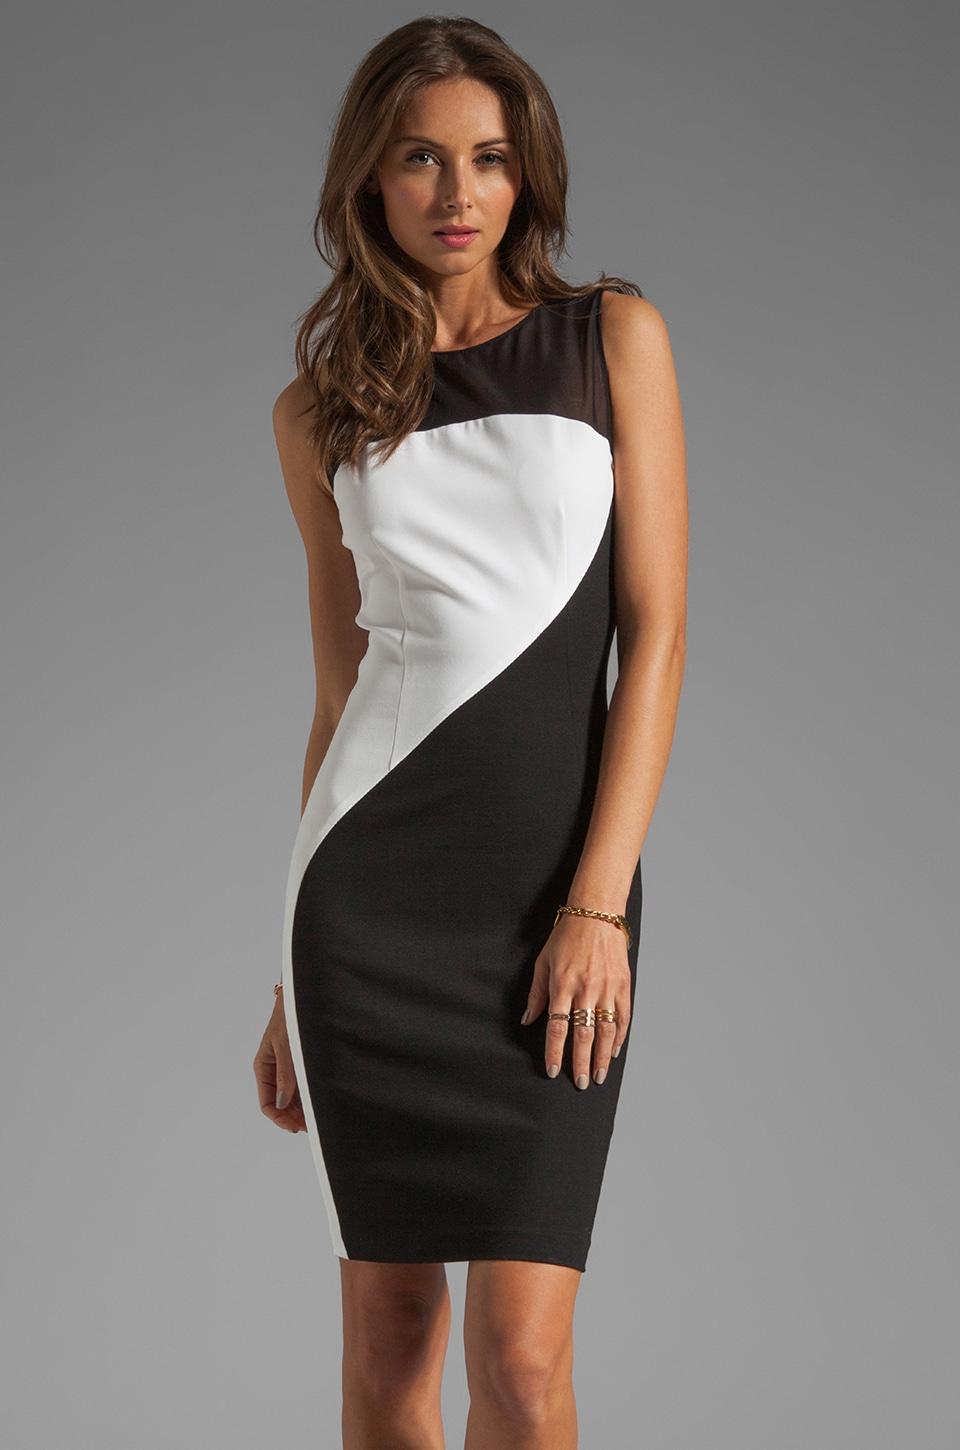 ERIN erin fetherston RUNWAY Francine Dress in Black/White